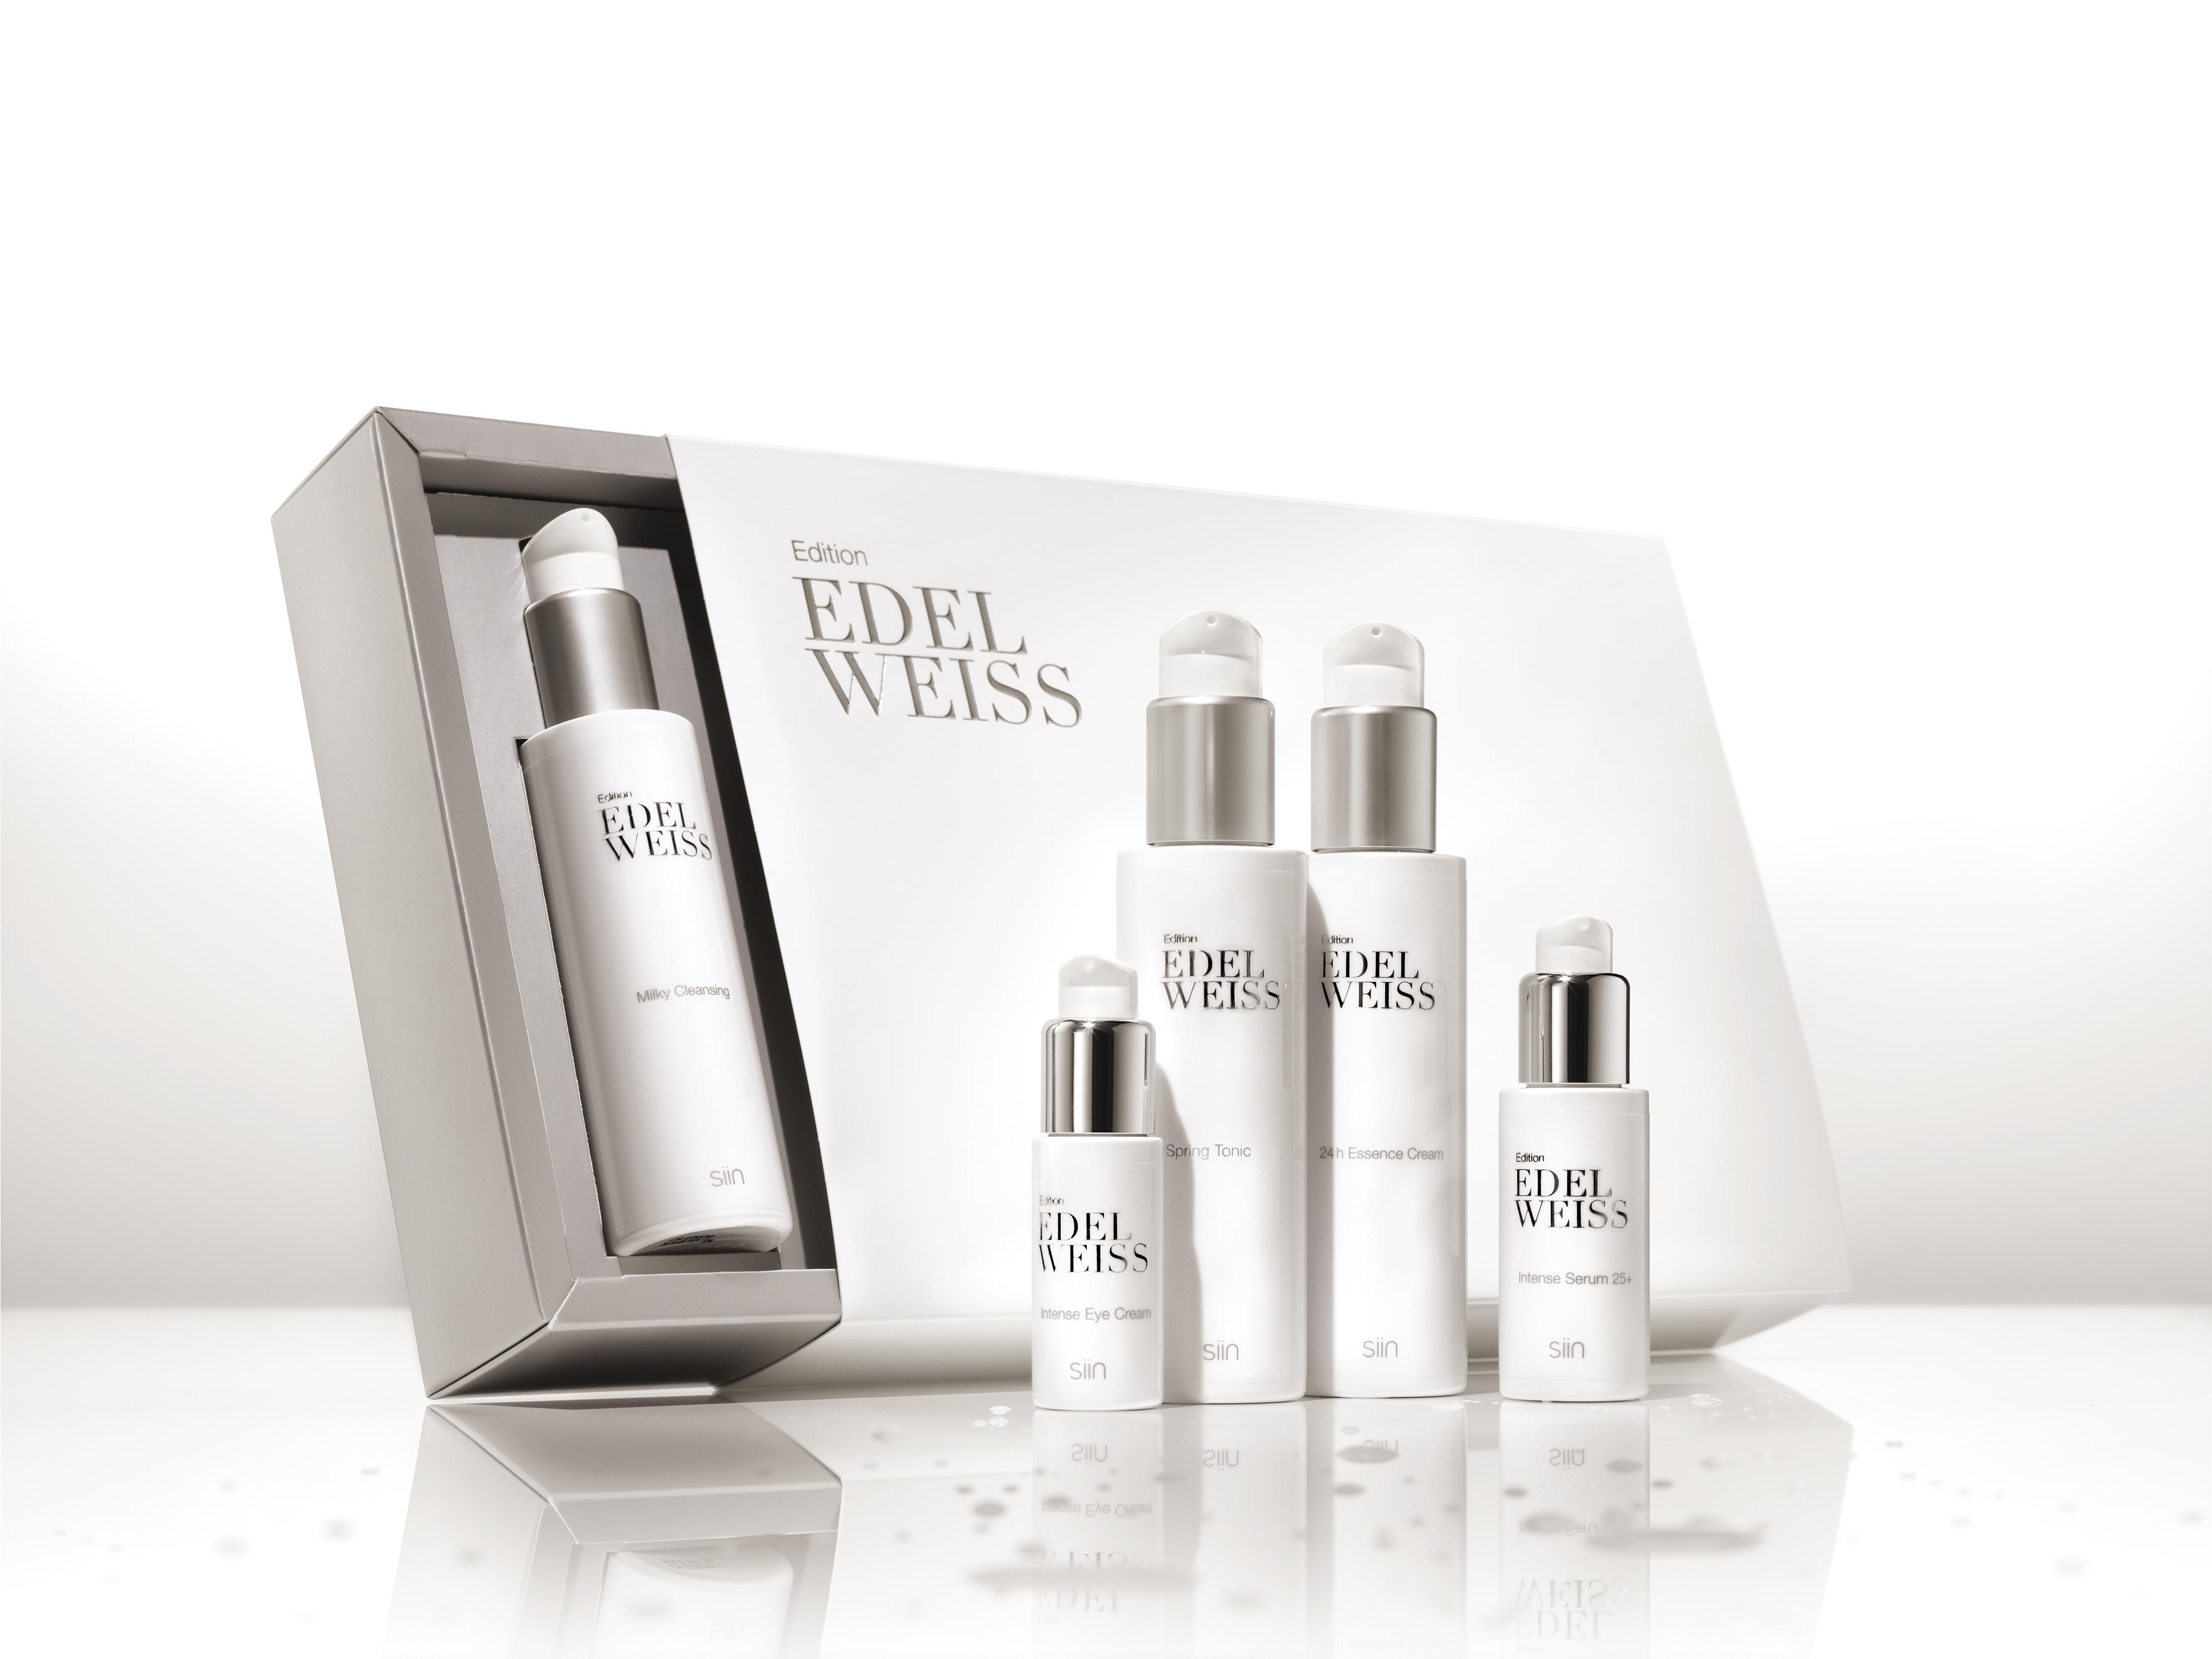 Edition Edelweiss Beauty Set complete 35+